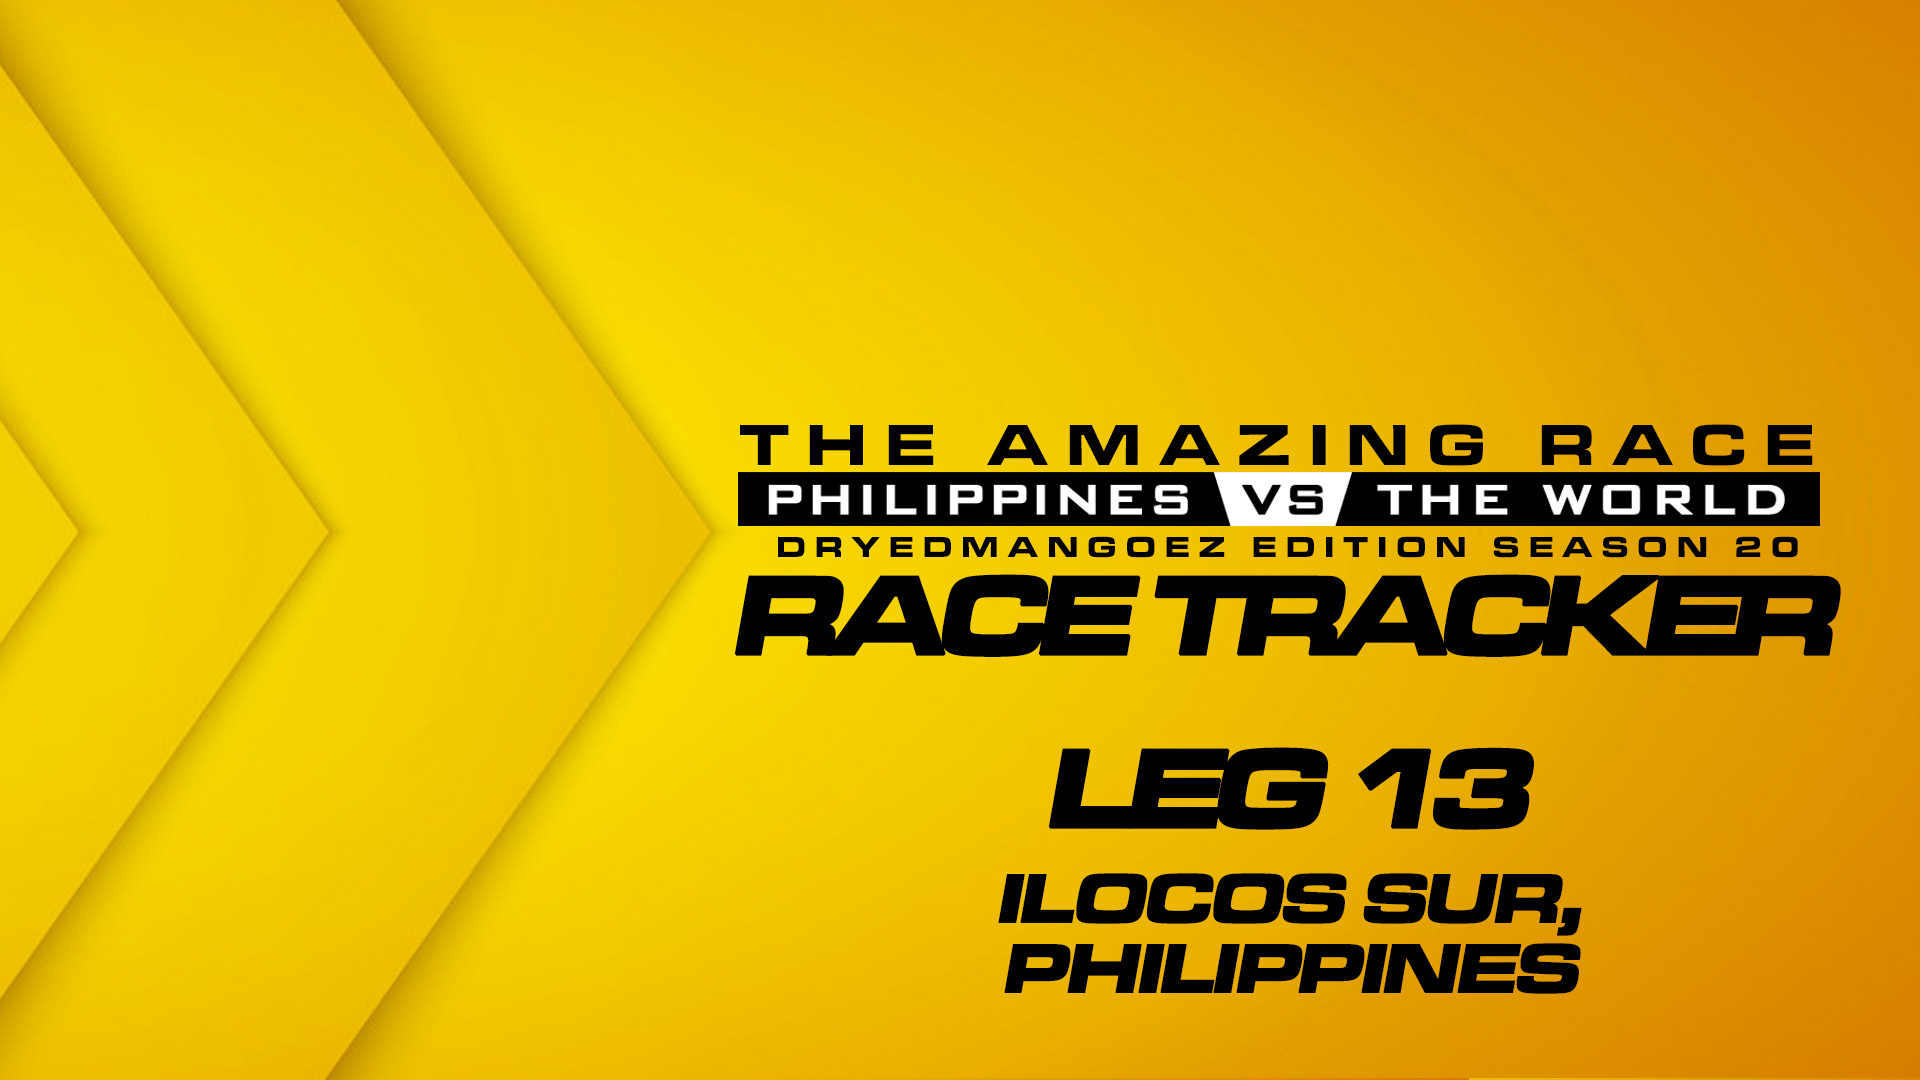 The Amazing Race Philippines vs The World (DryedMangoez Edition Season 20) Race Tracker – Leg 13